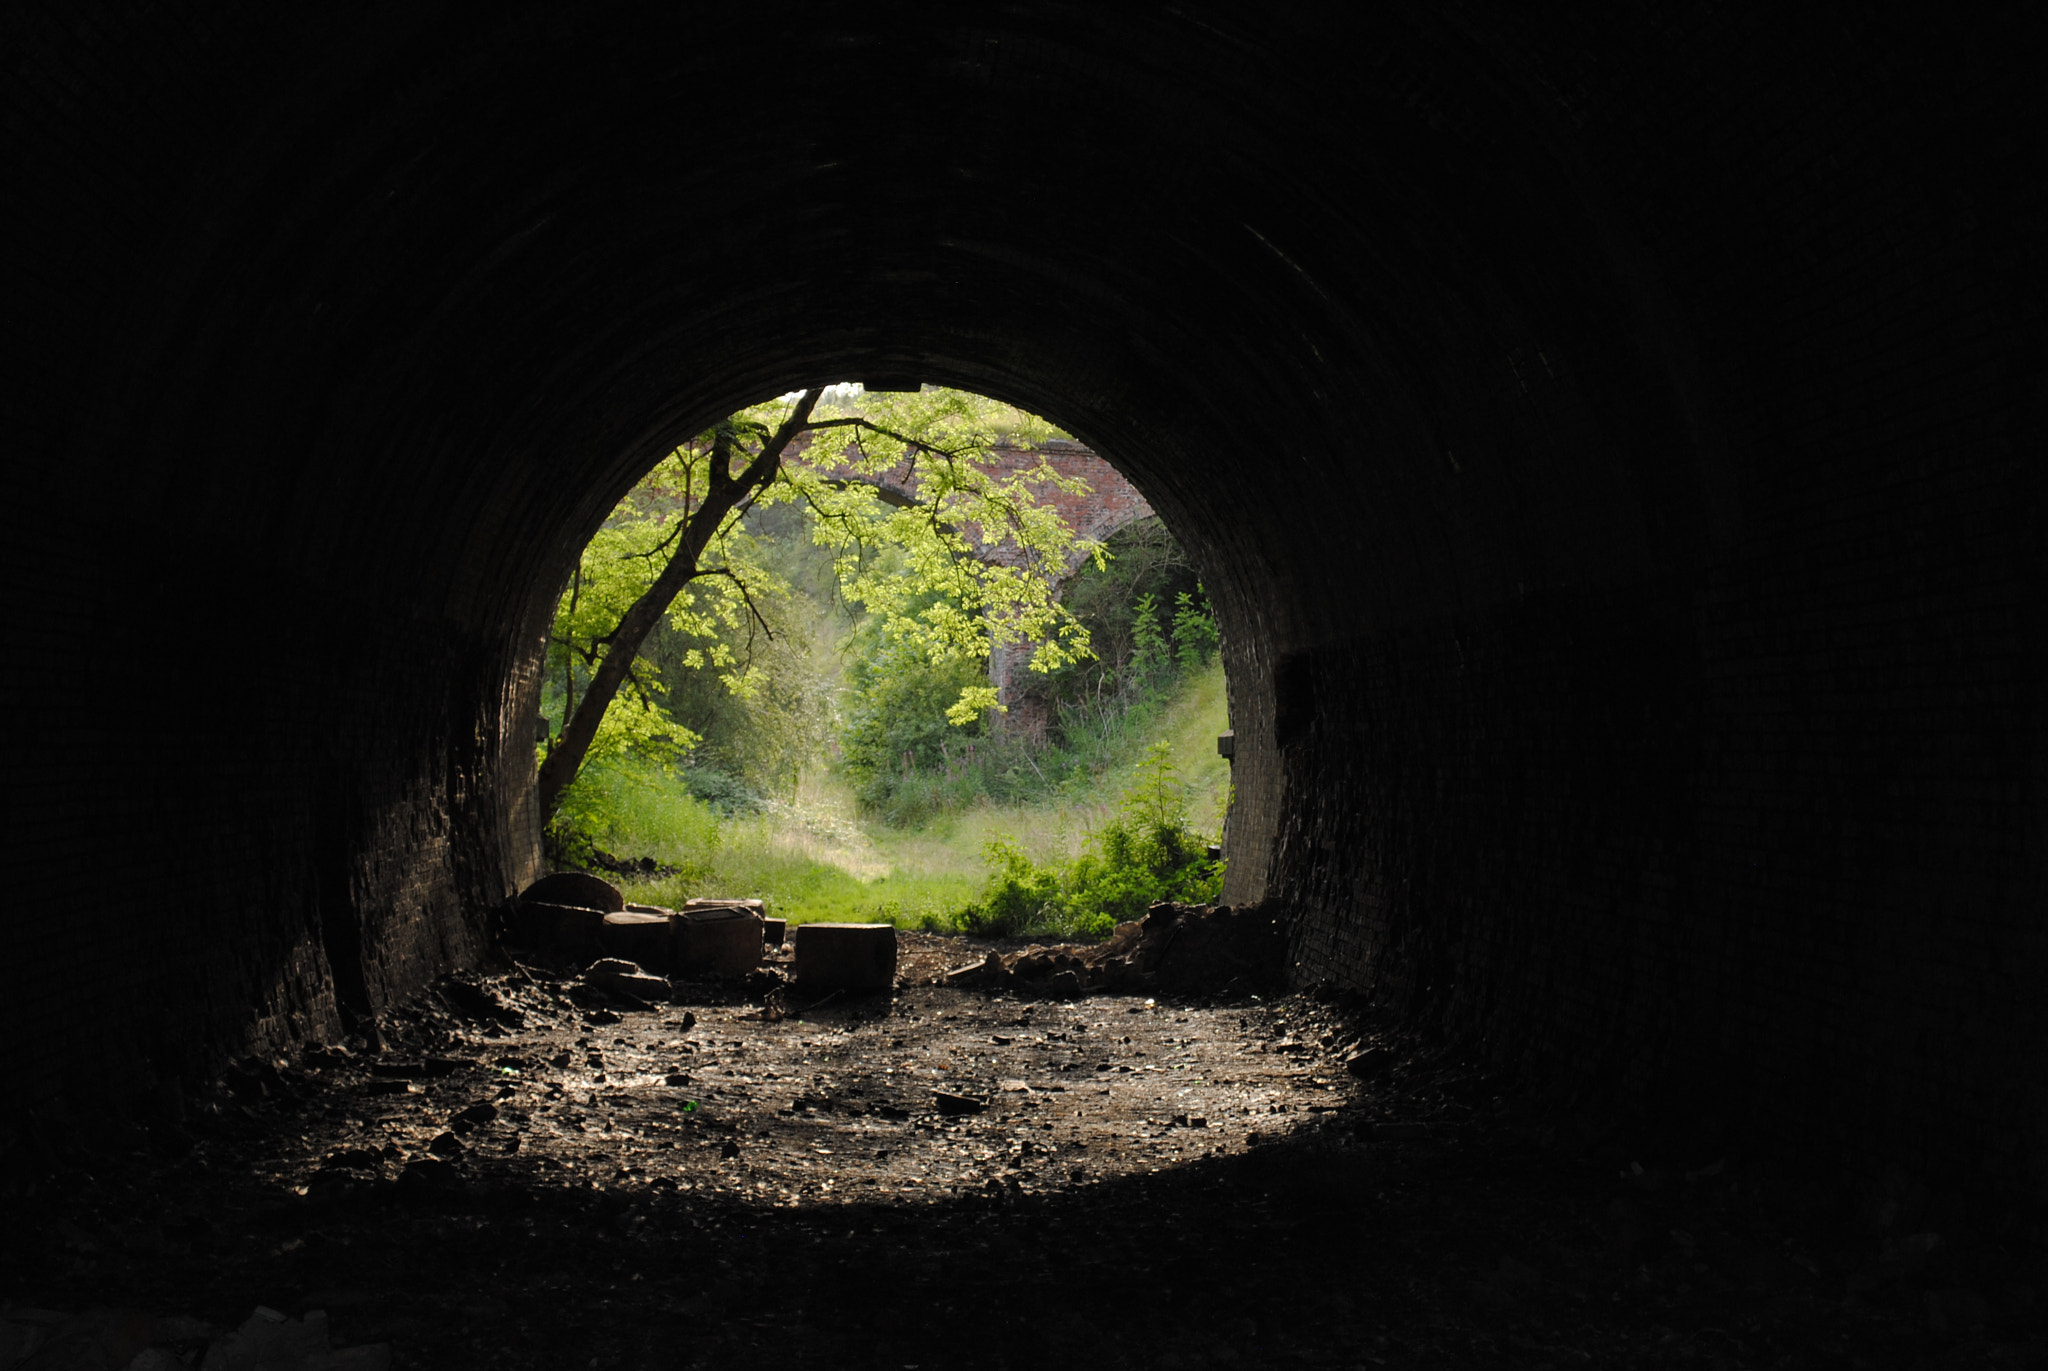 Photograph Tunnel by Rich Rushton on 500px